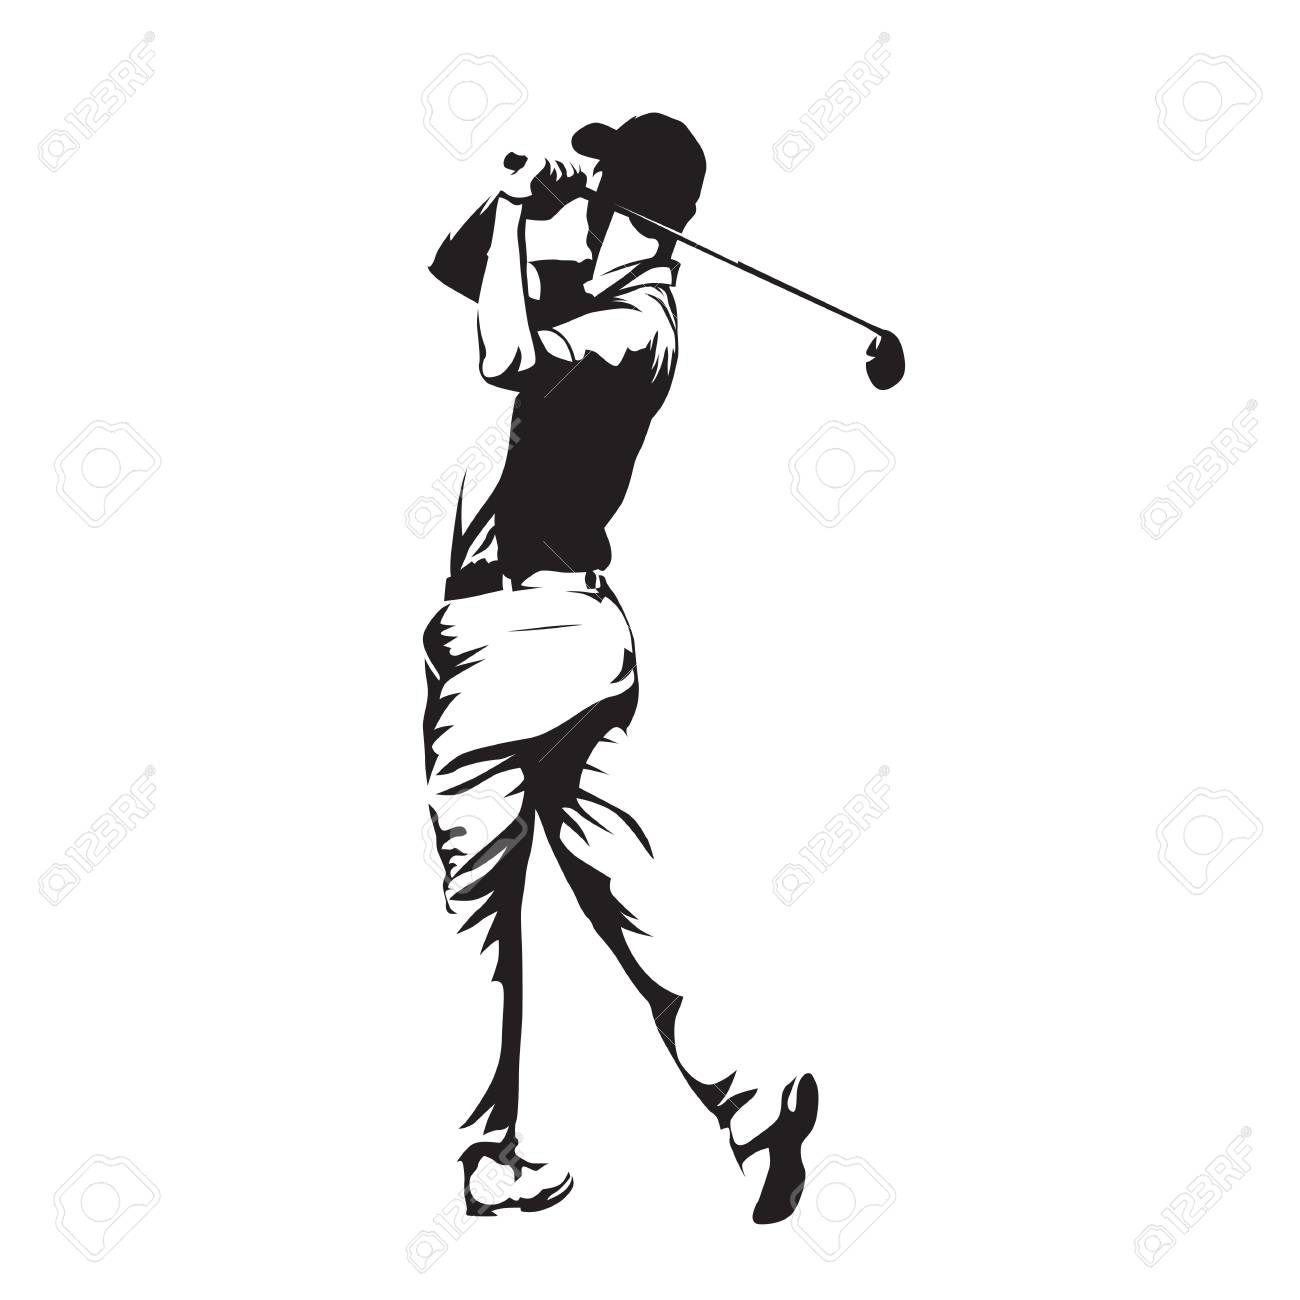 Golf player, abstract vector silhouette - 80710483